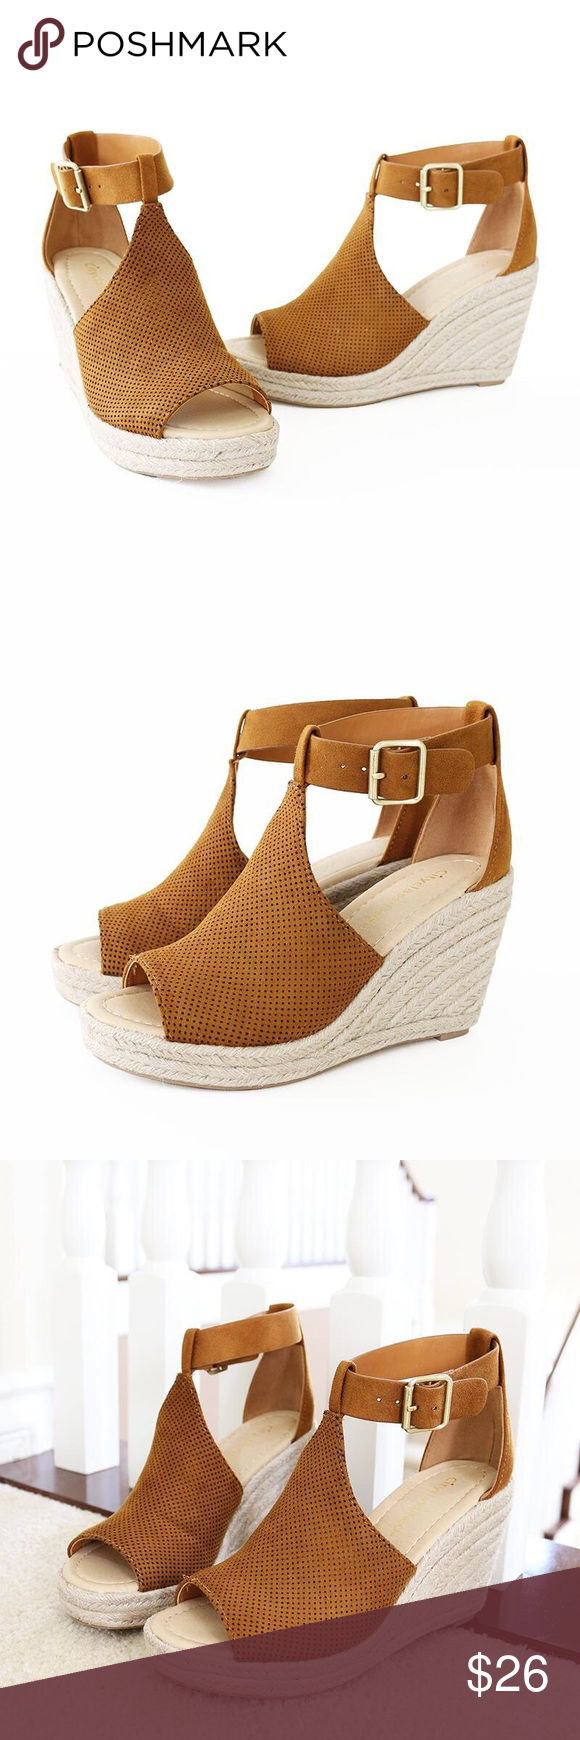 5d5f8e48f7b cashier tan espadrille sandal Perforated Upper Ankle Strap Bronze Buckle Wedge  Espadrille Sandal. Style